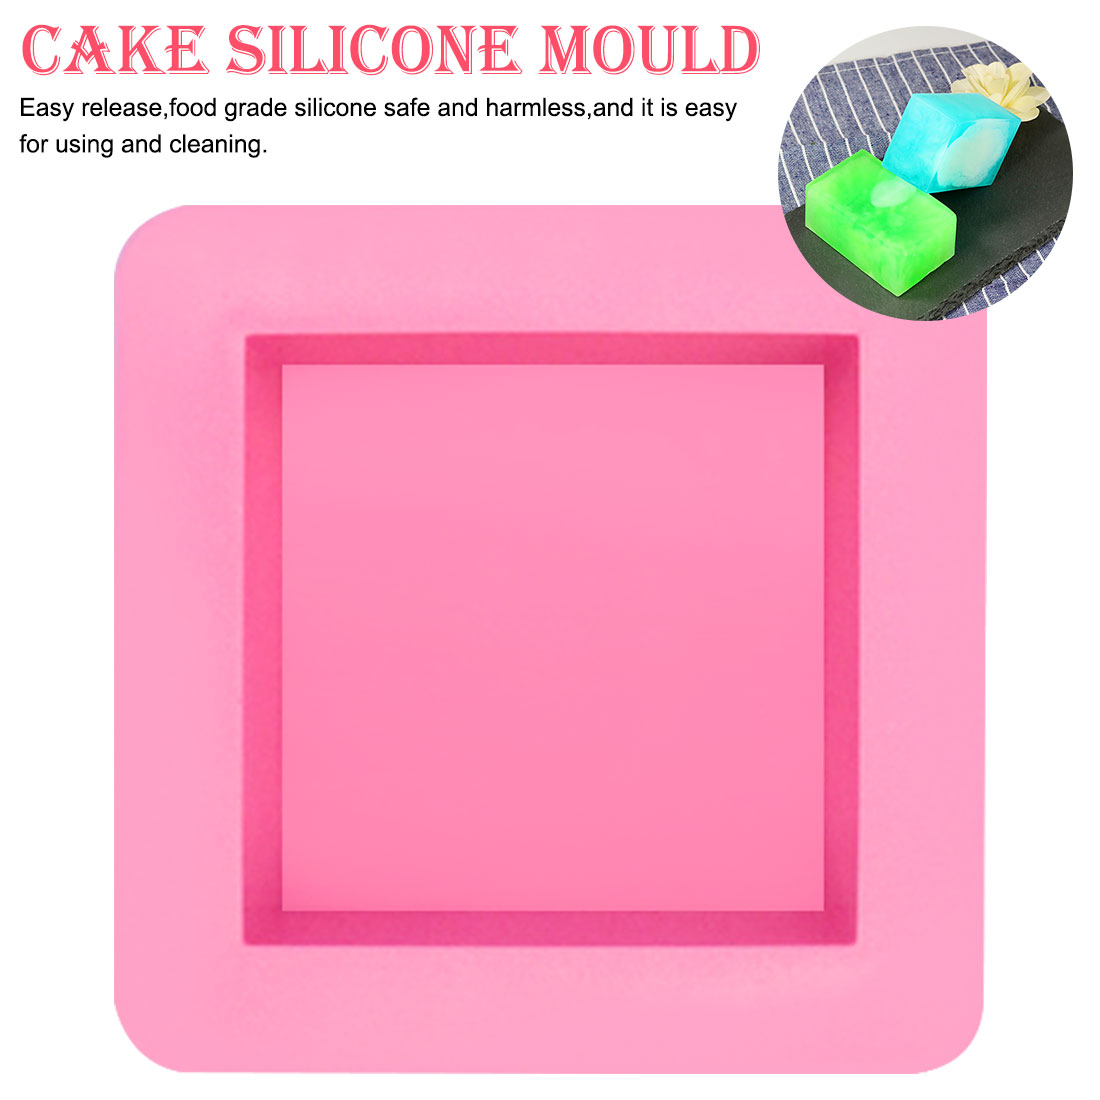 Silicone Soap Mold 1pcs Square 100% Hand Made DIY Cake Silicone Mold Fondant DIY Cake Decorating Tools